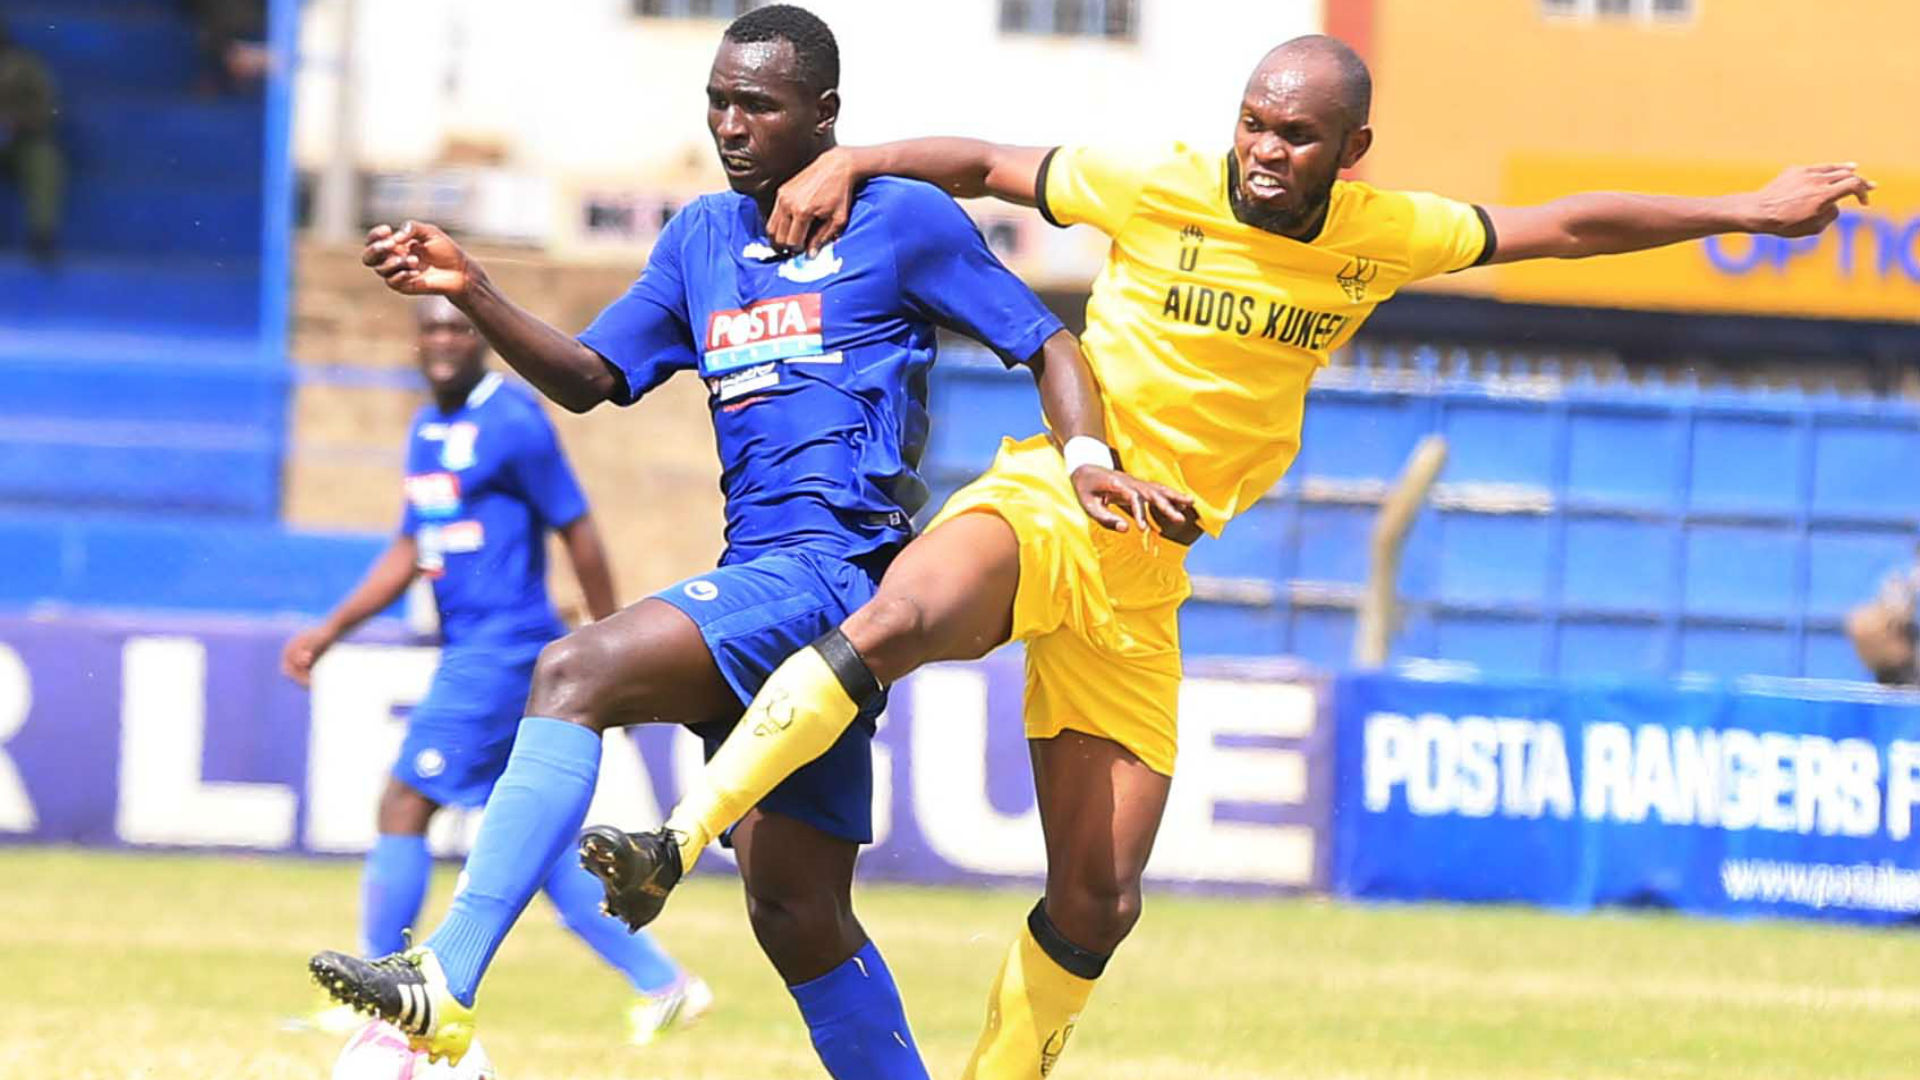 Coronavirus: Together we can stop this pandemic - Wazito FC star Isuza